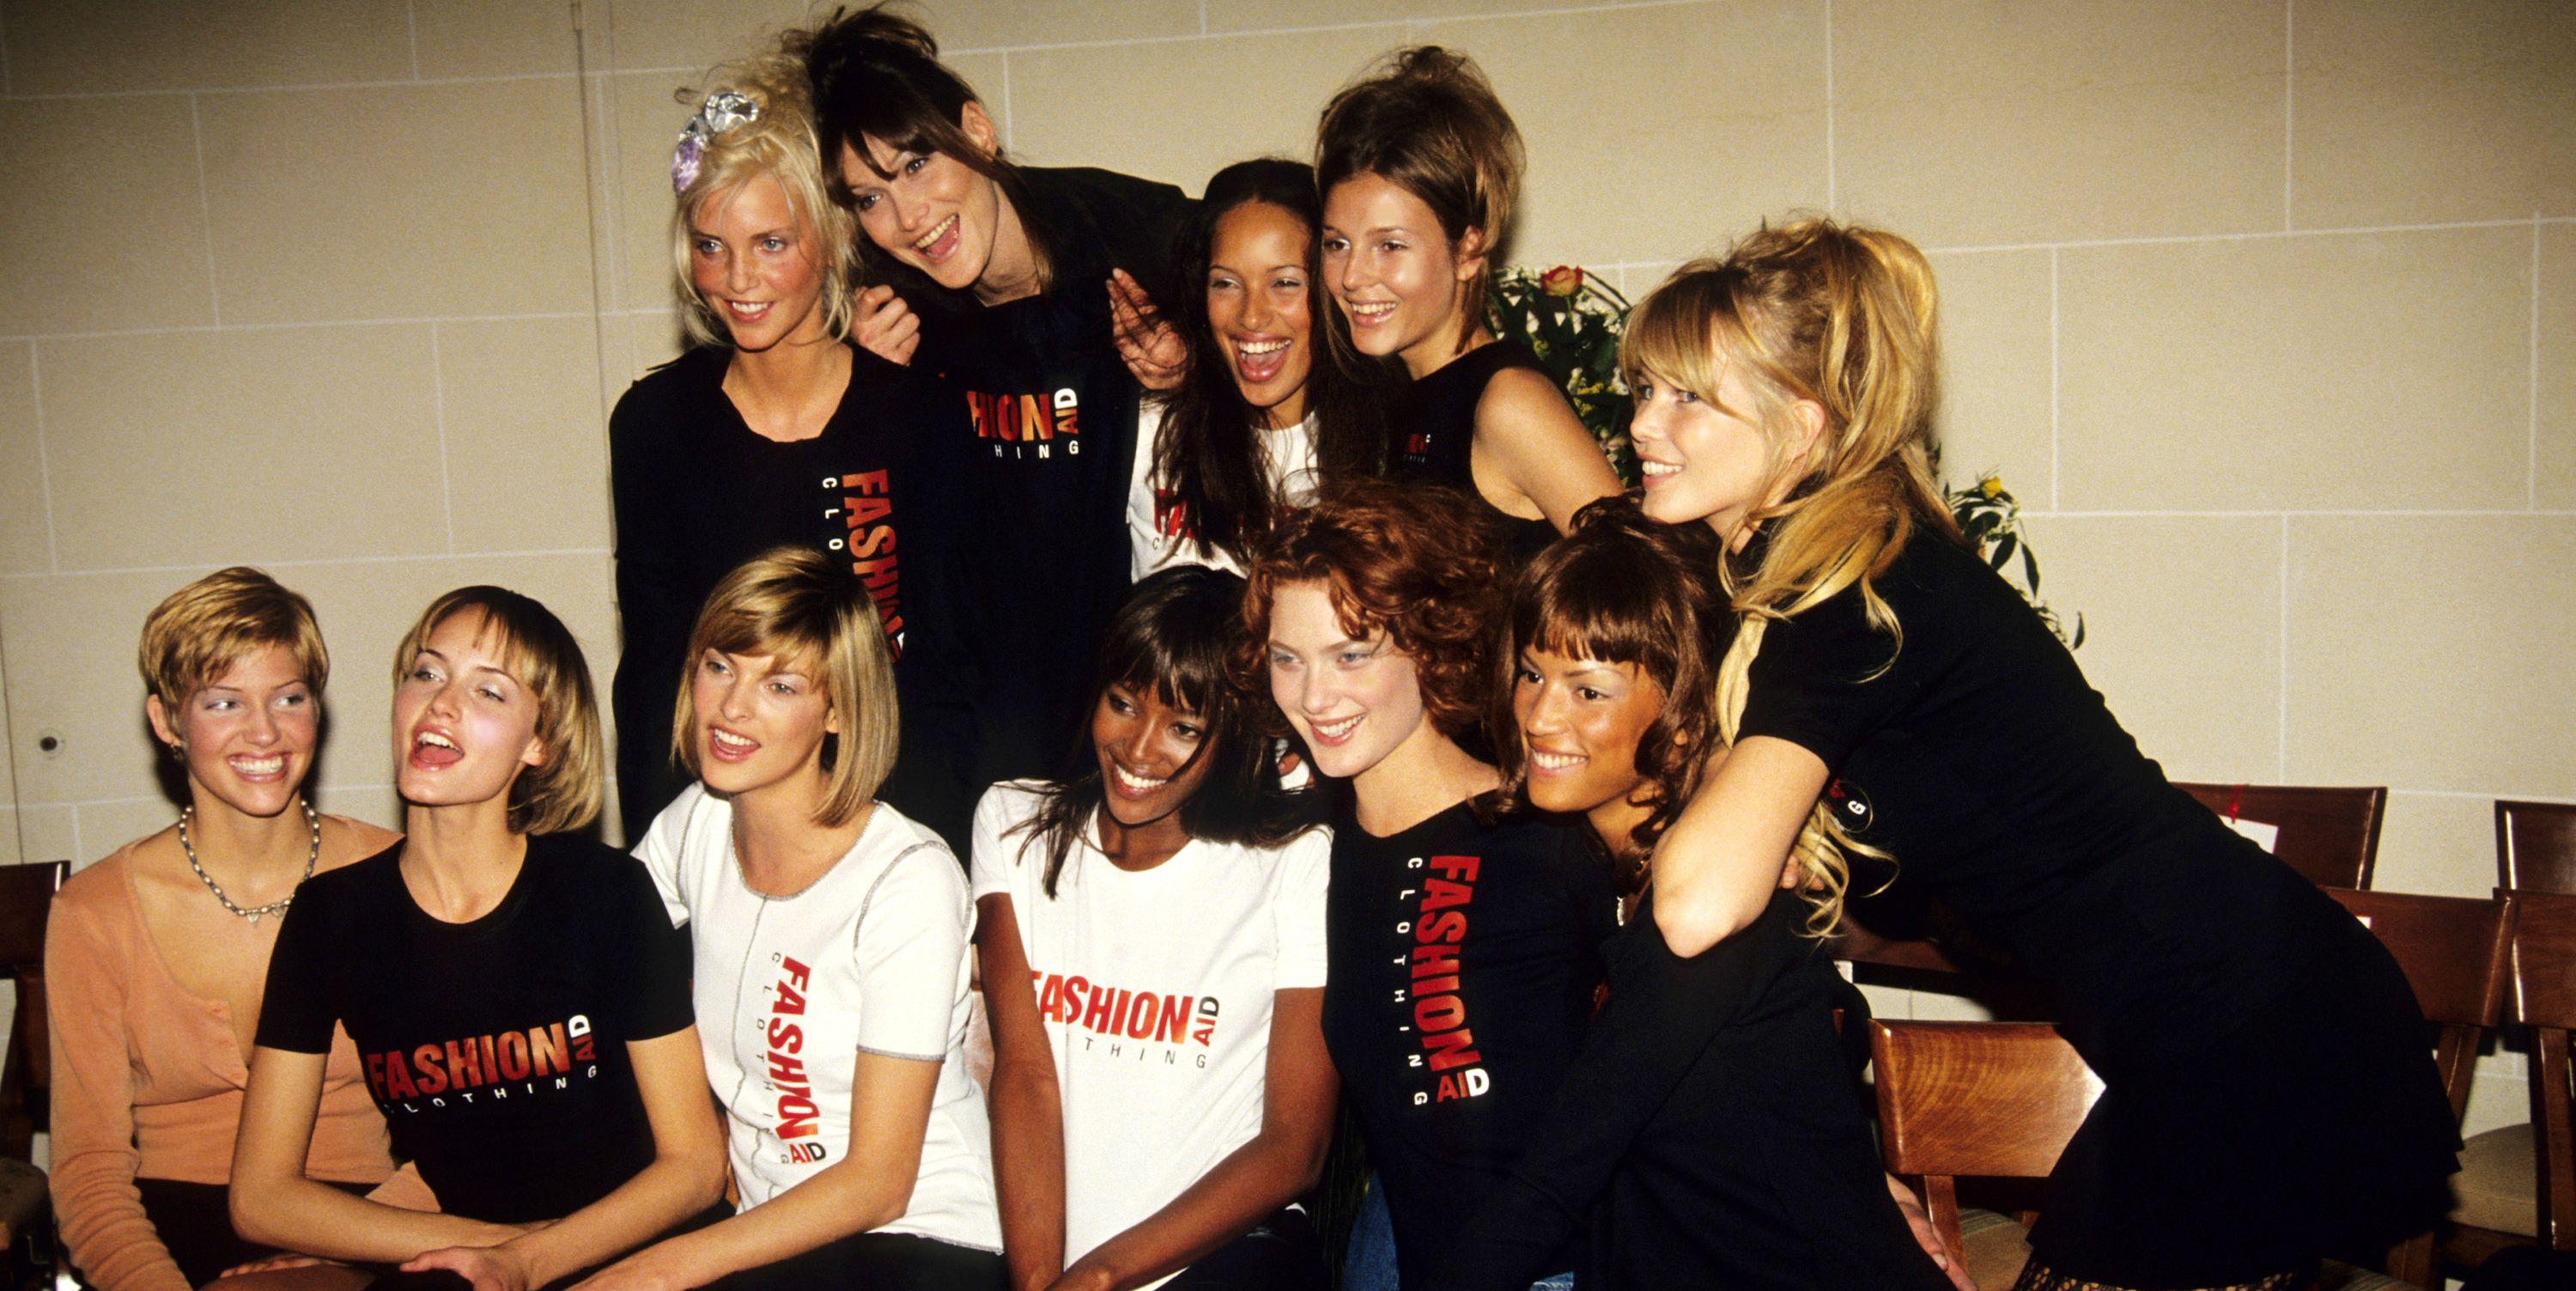 The 15 Most Famous Supermodels of the '90s